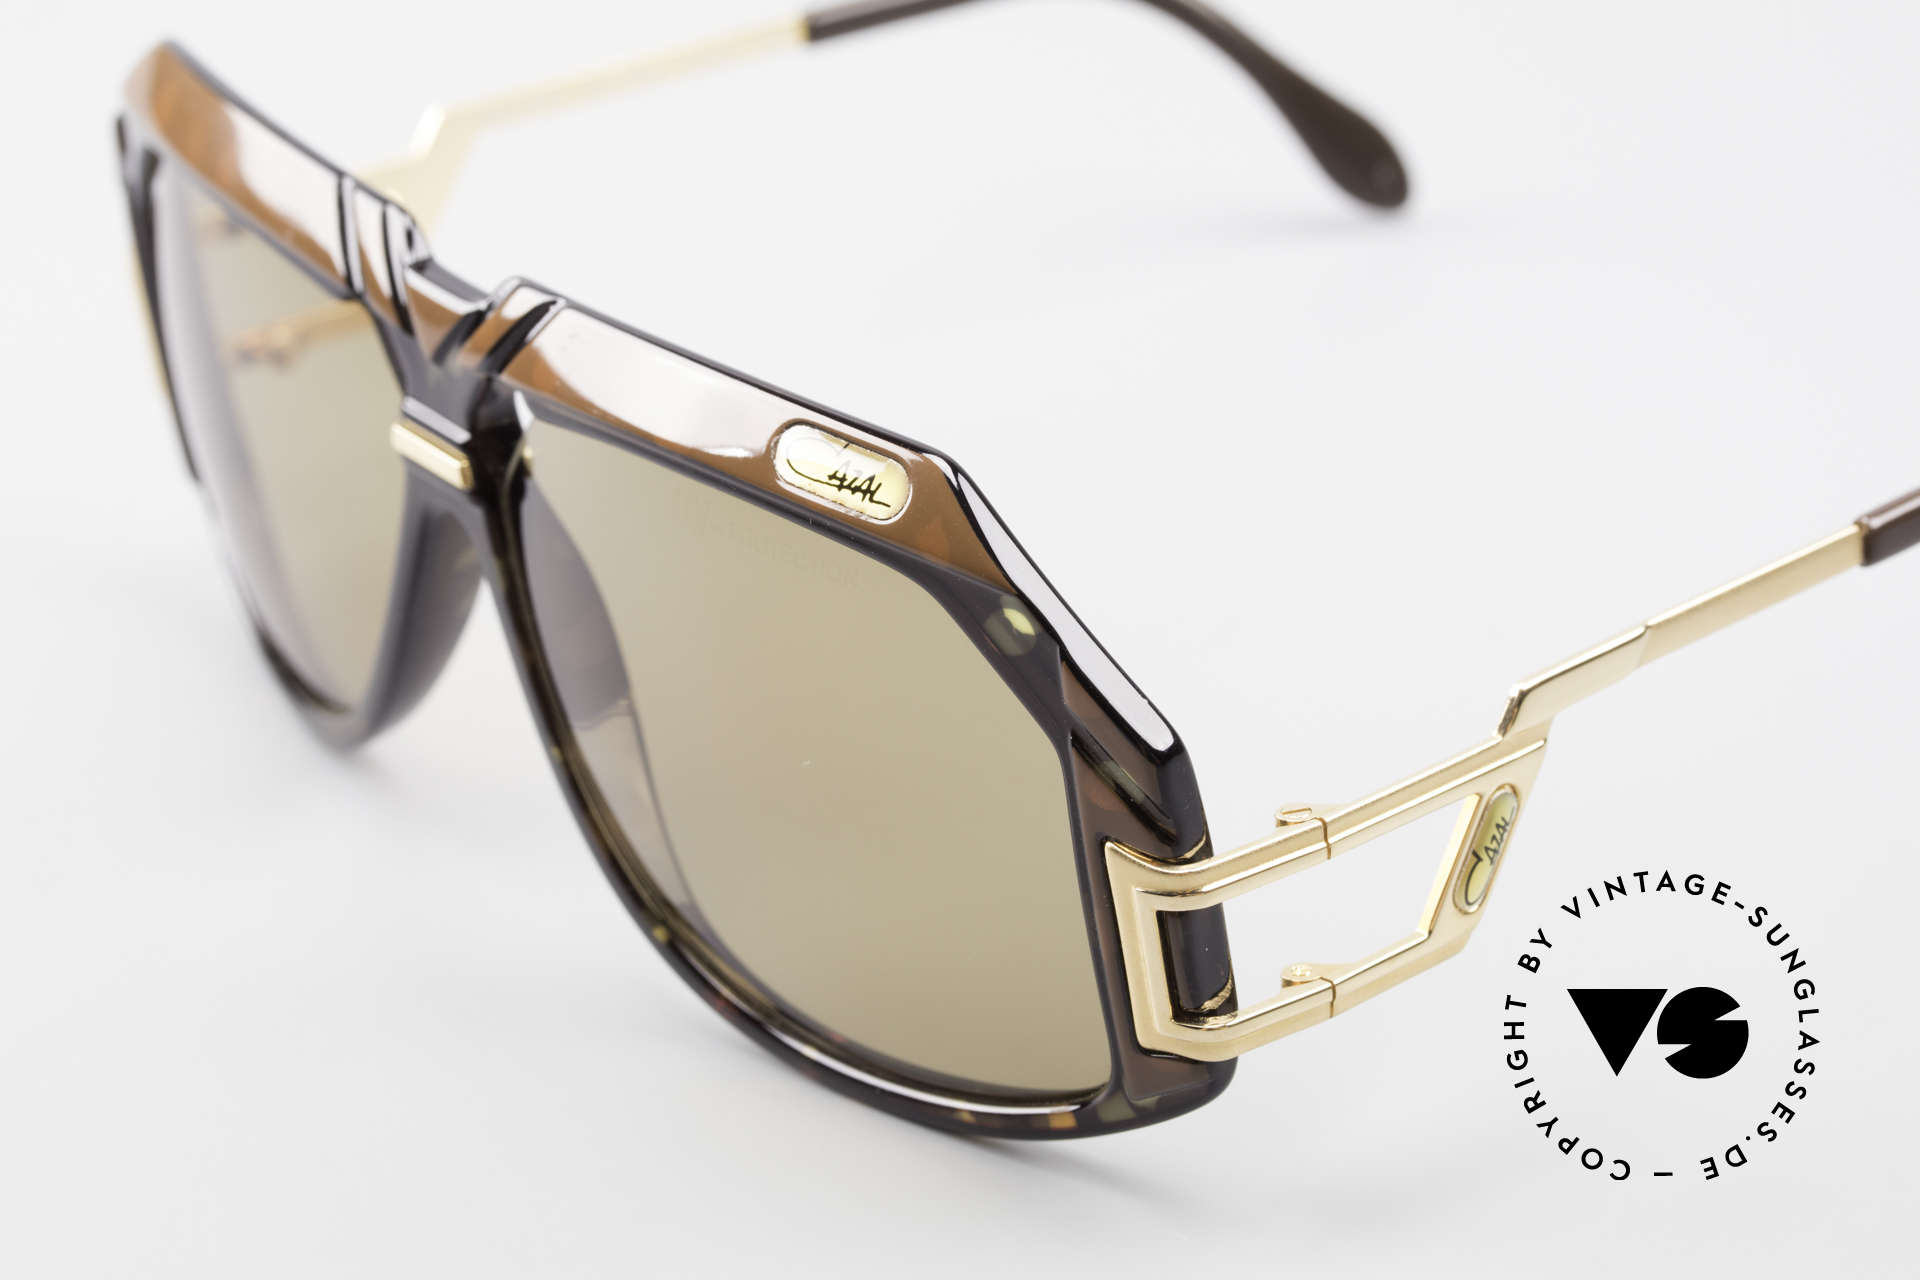 Cazal 870 Rare 80's Designer Shades, a sought-after collector's item; MADE IN W.GERMANY, Made for Men and Women